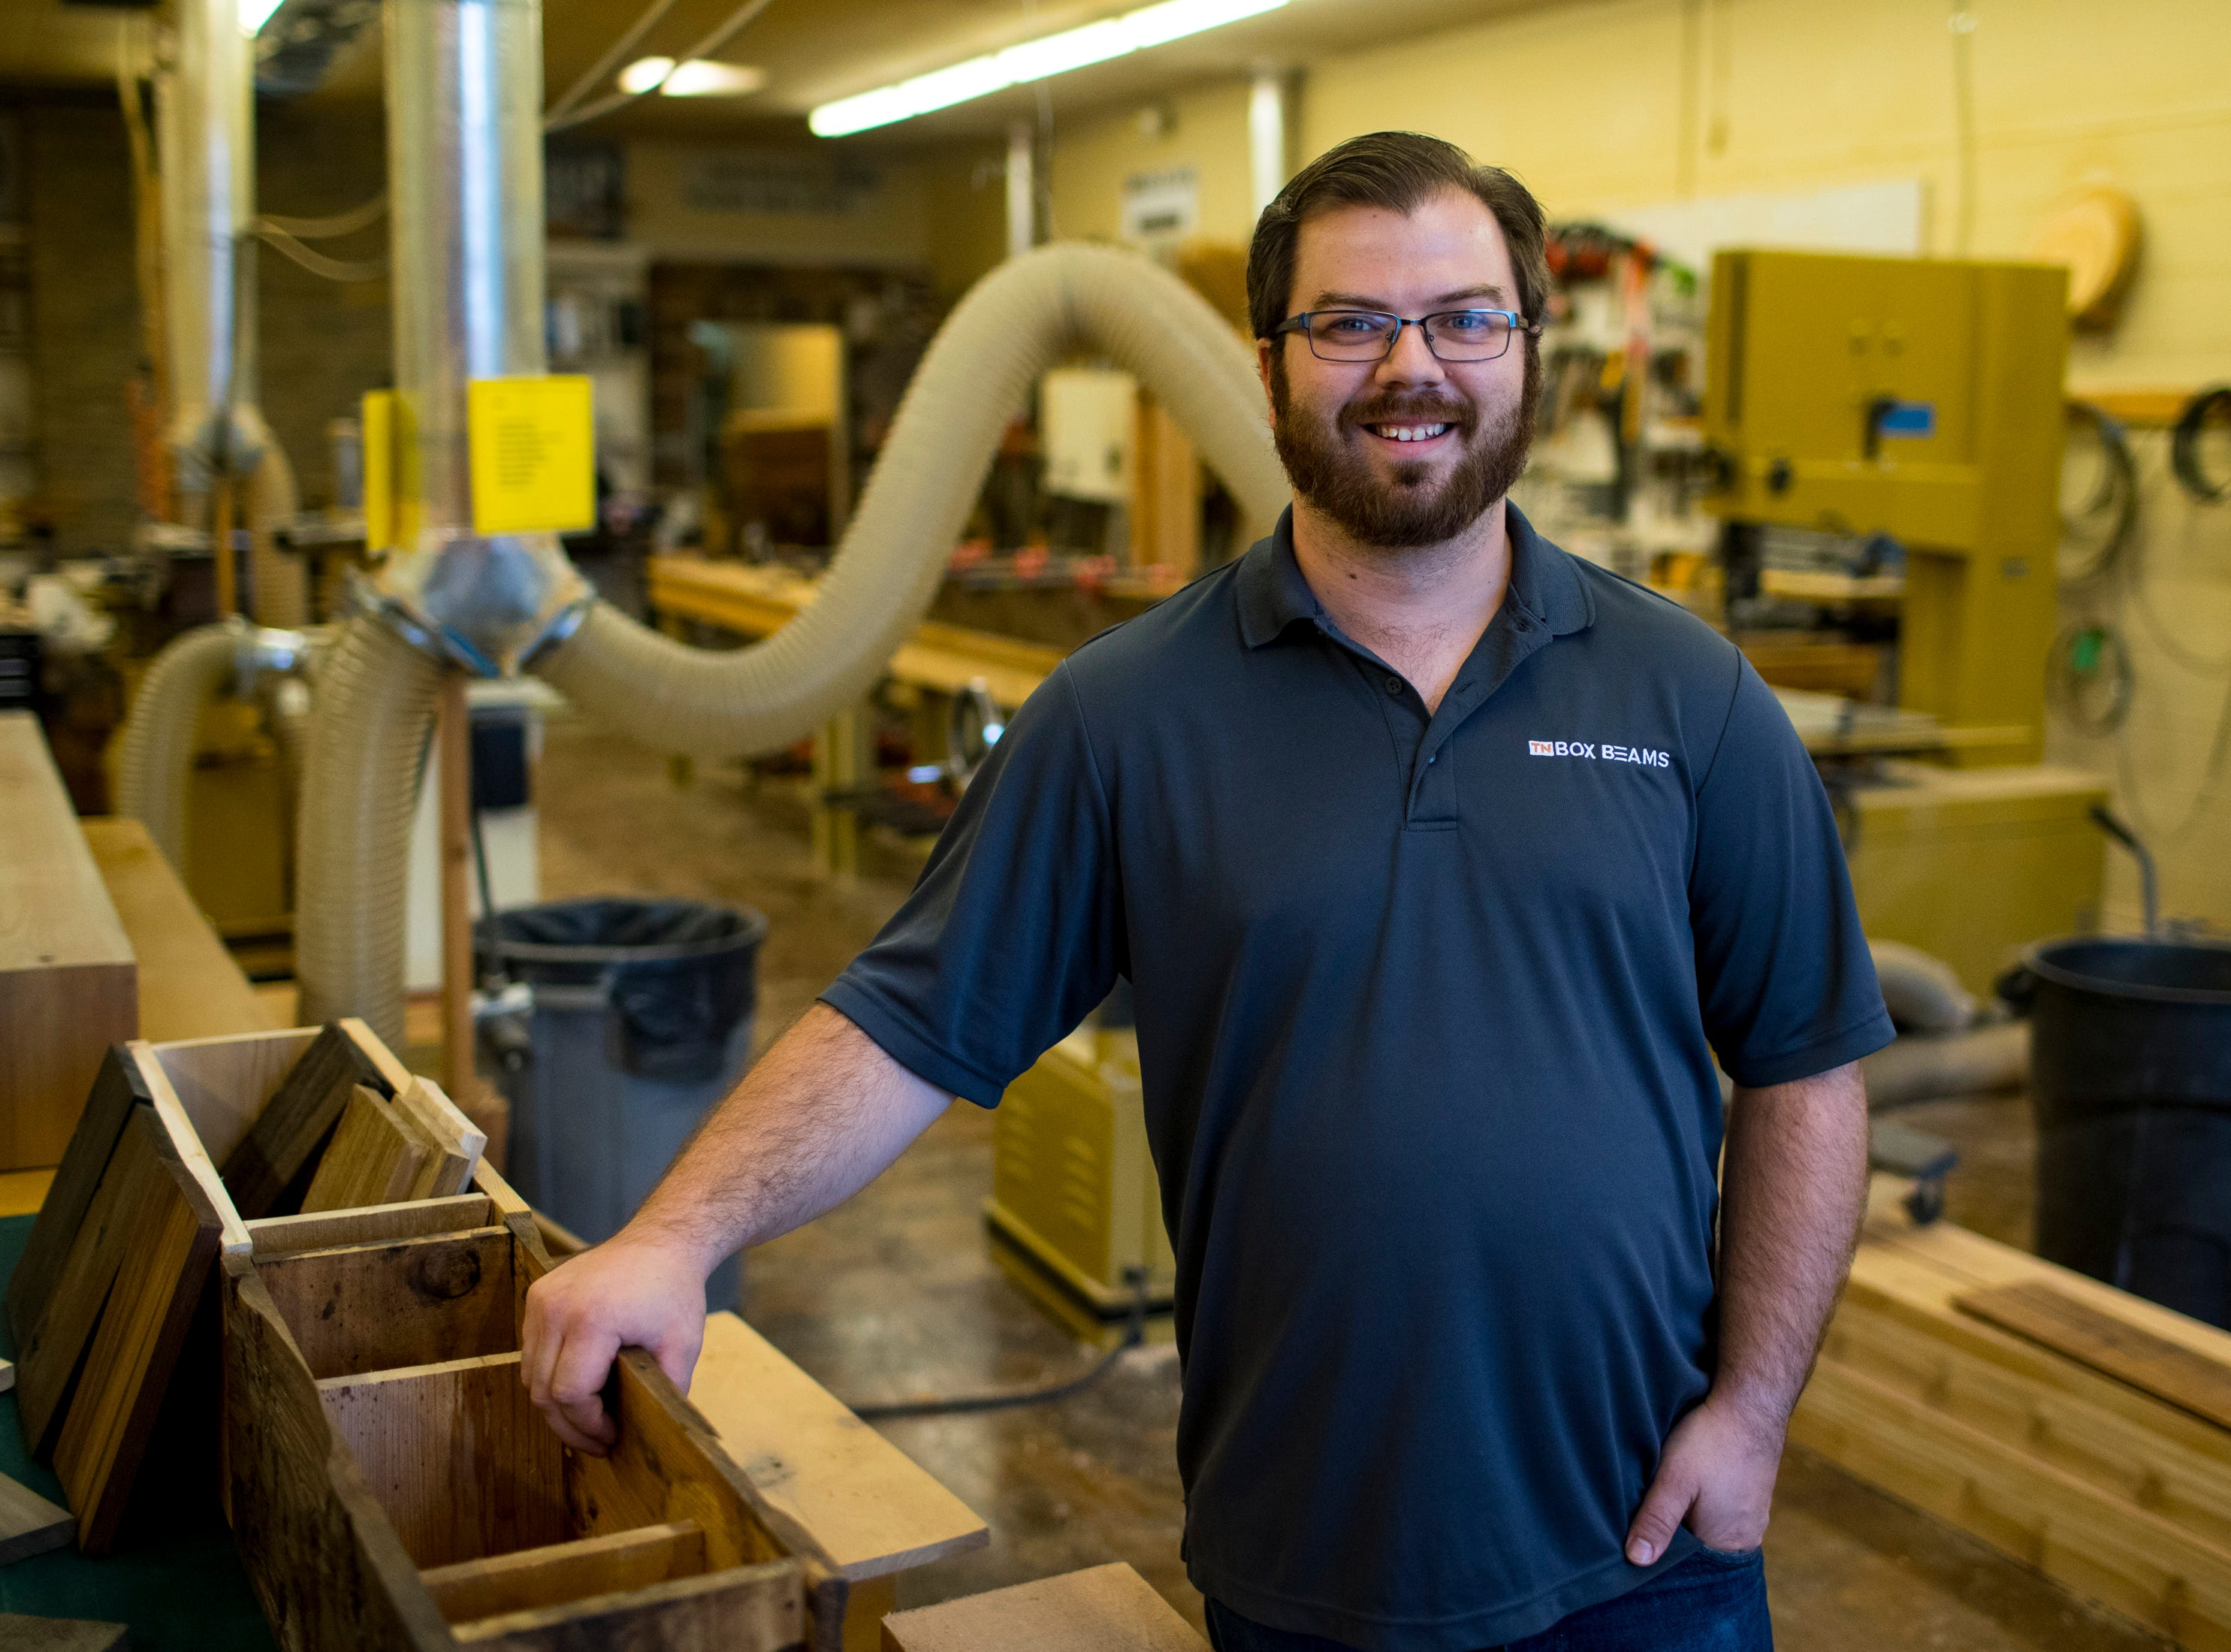 TN Box Beams representative Kenny Bowling at TN Box Beam in Franklin on Friday, Nov. 9, 2018. TN Box Beams will be featured on the HGTV show Property Brothers Buying + Selling on Nov. 14.